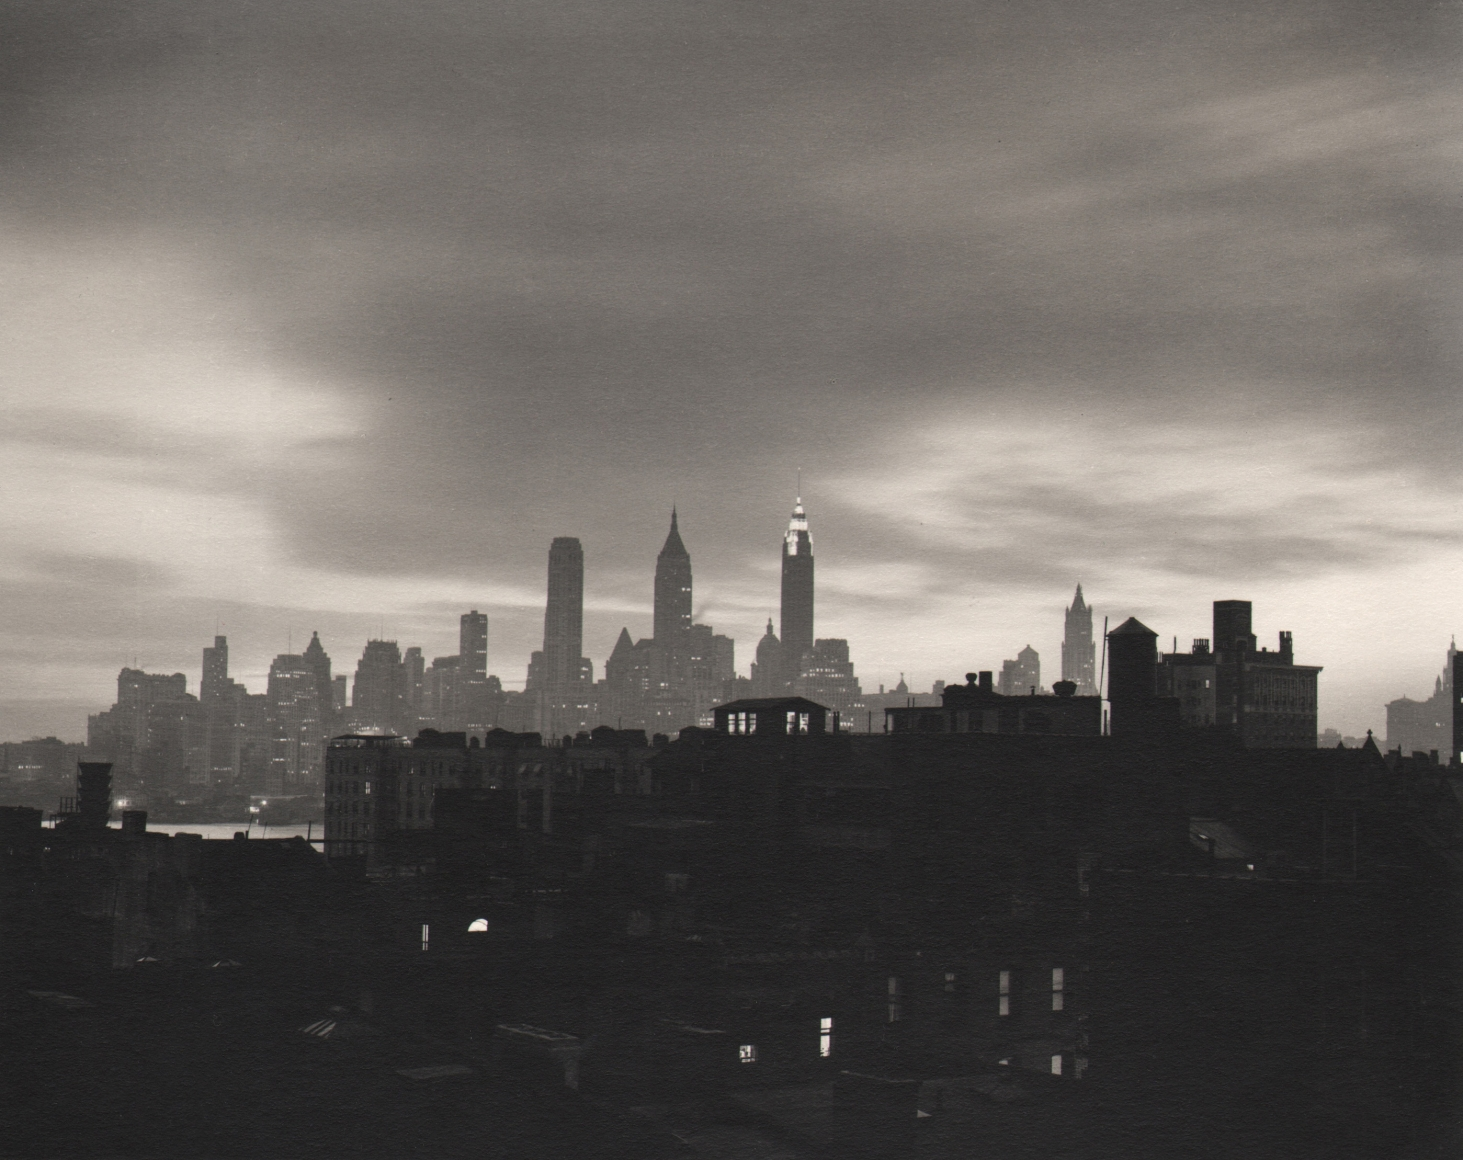 35. John C. Hatlem, New York City Skyline, c. 1935. Dark, mostly silhouetted view of the city from across a river. Dark buildings in the foreground. The Empire State is in the center background against a cloudy sky.